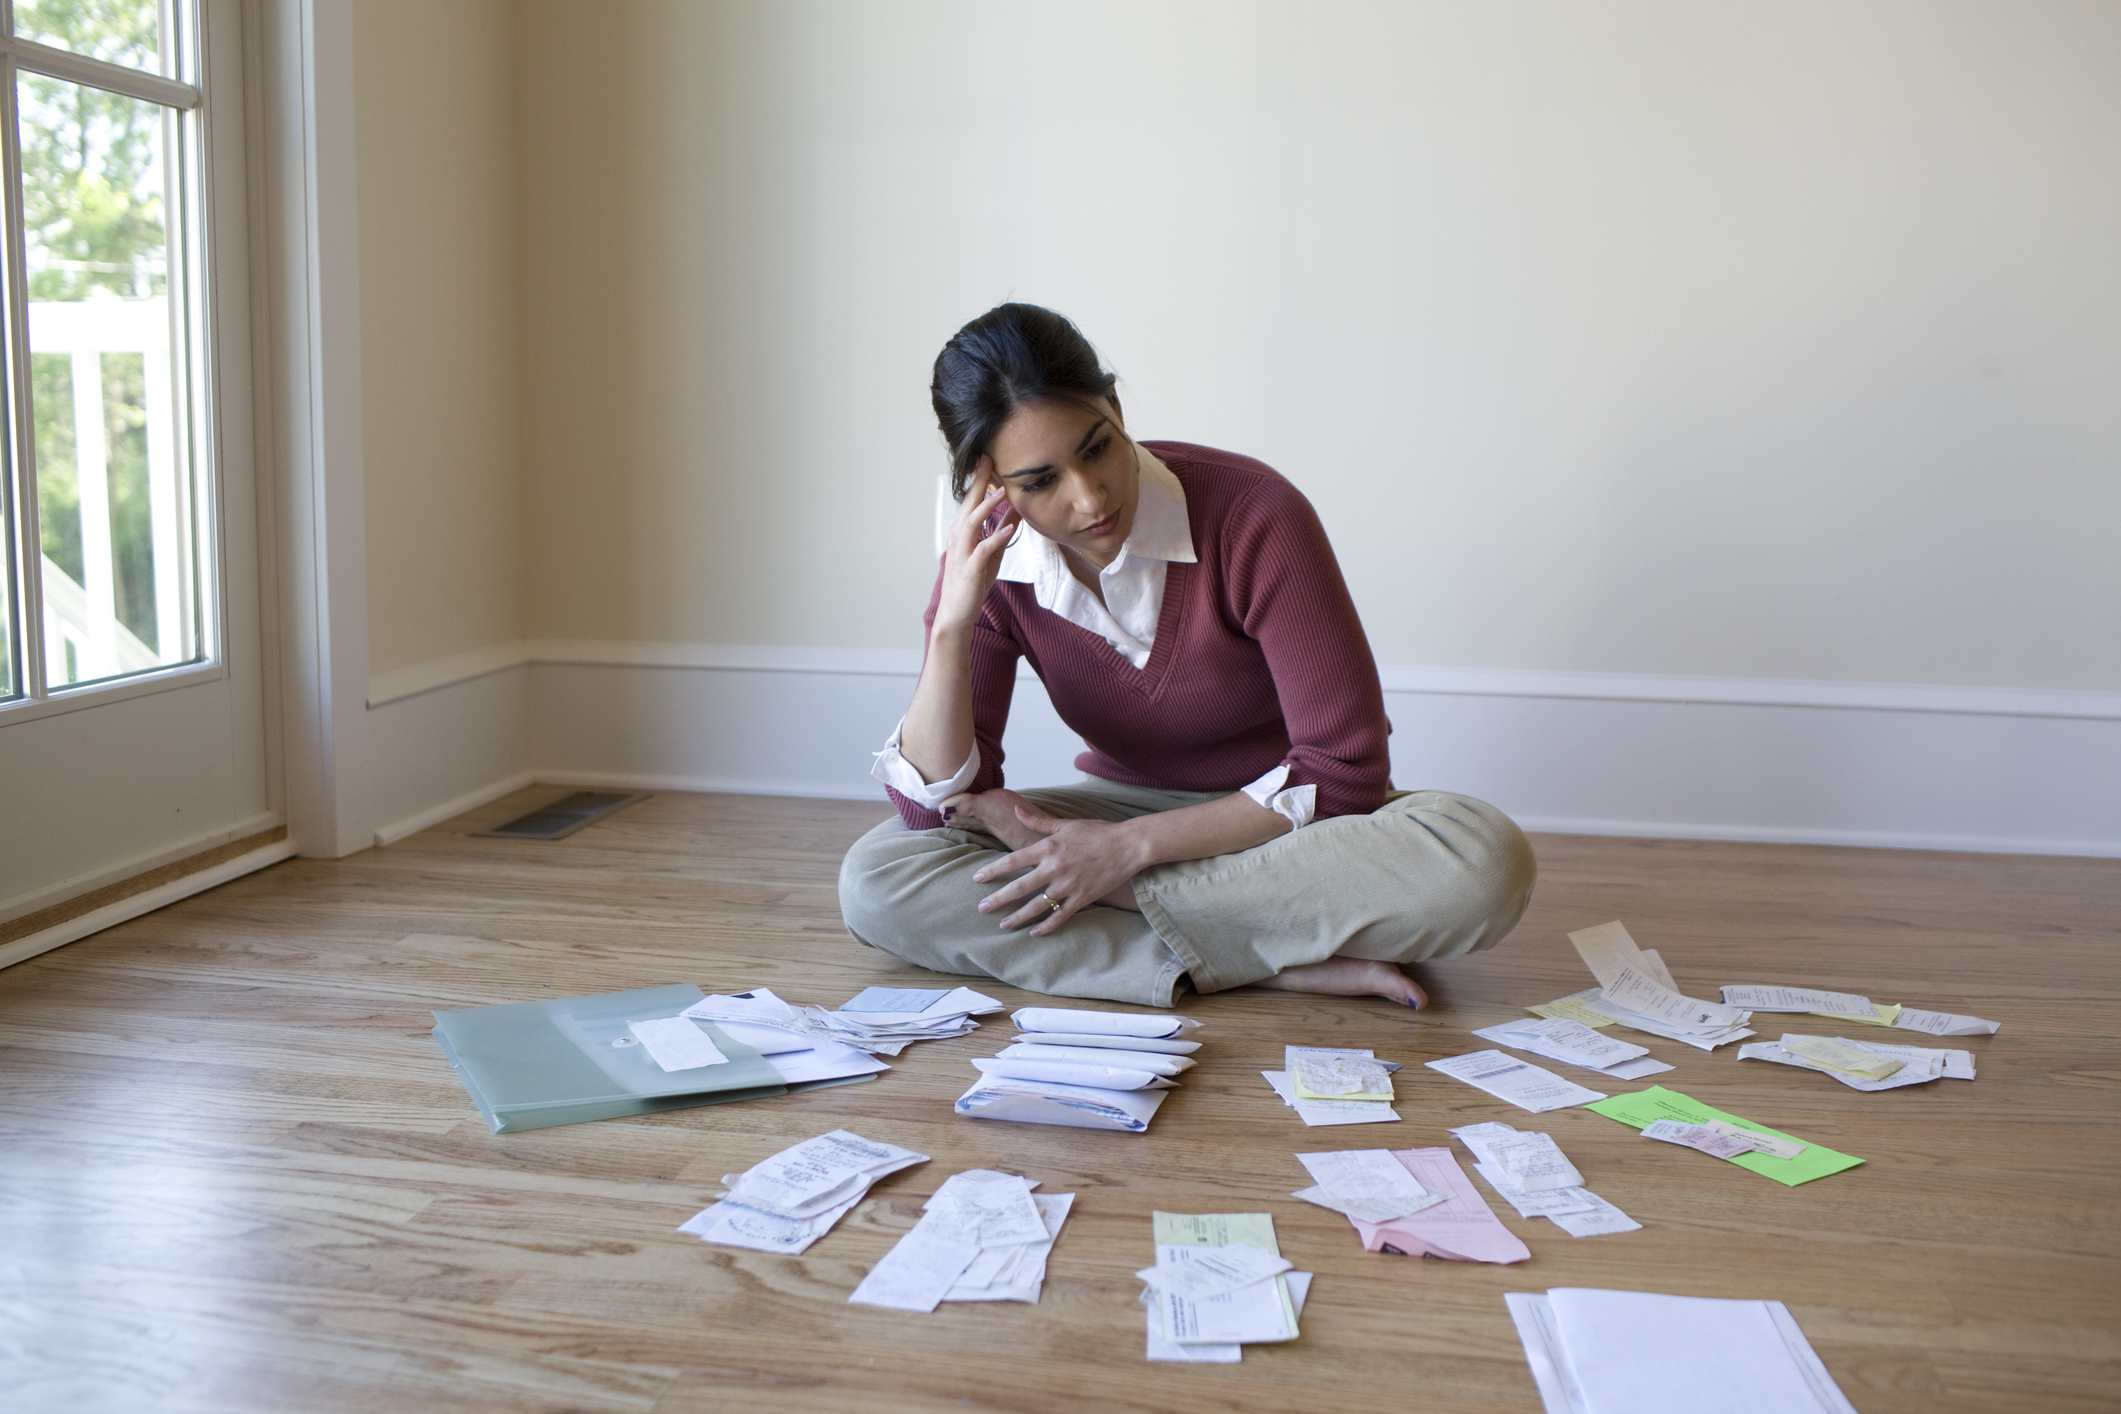 Woman taking inventory of bills in small piles